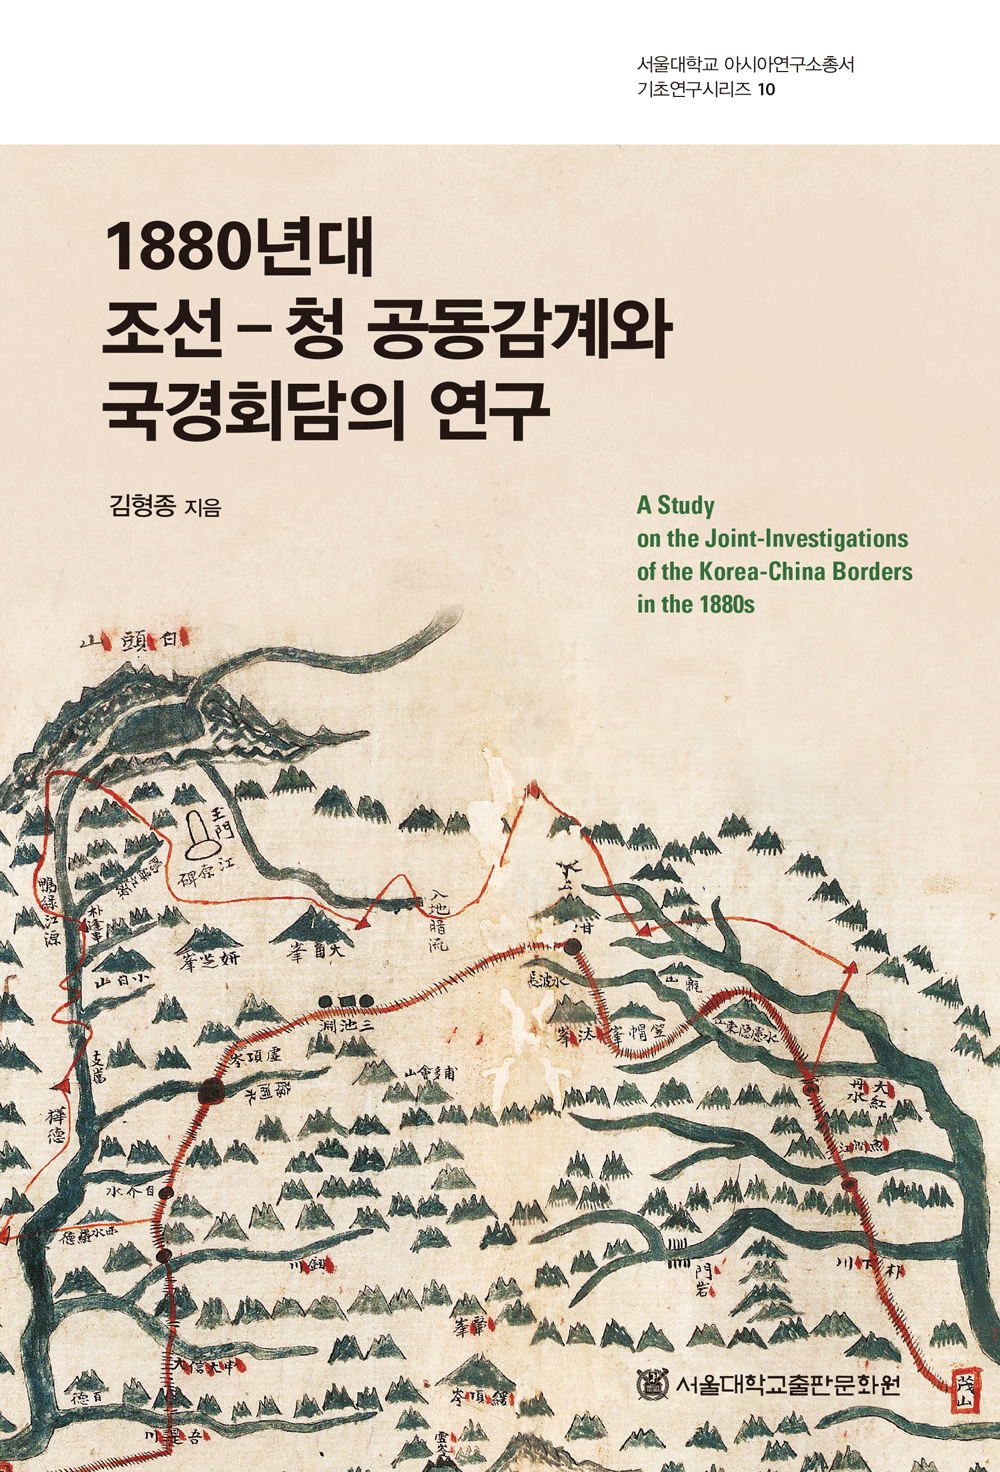 A Study on the Joint-Investigations of the Korea-China Borders in the 1880s